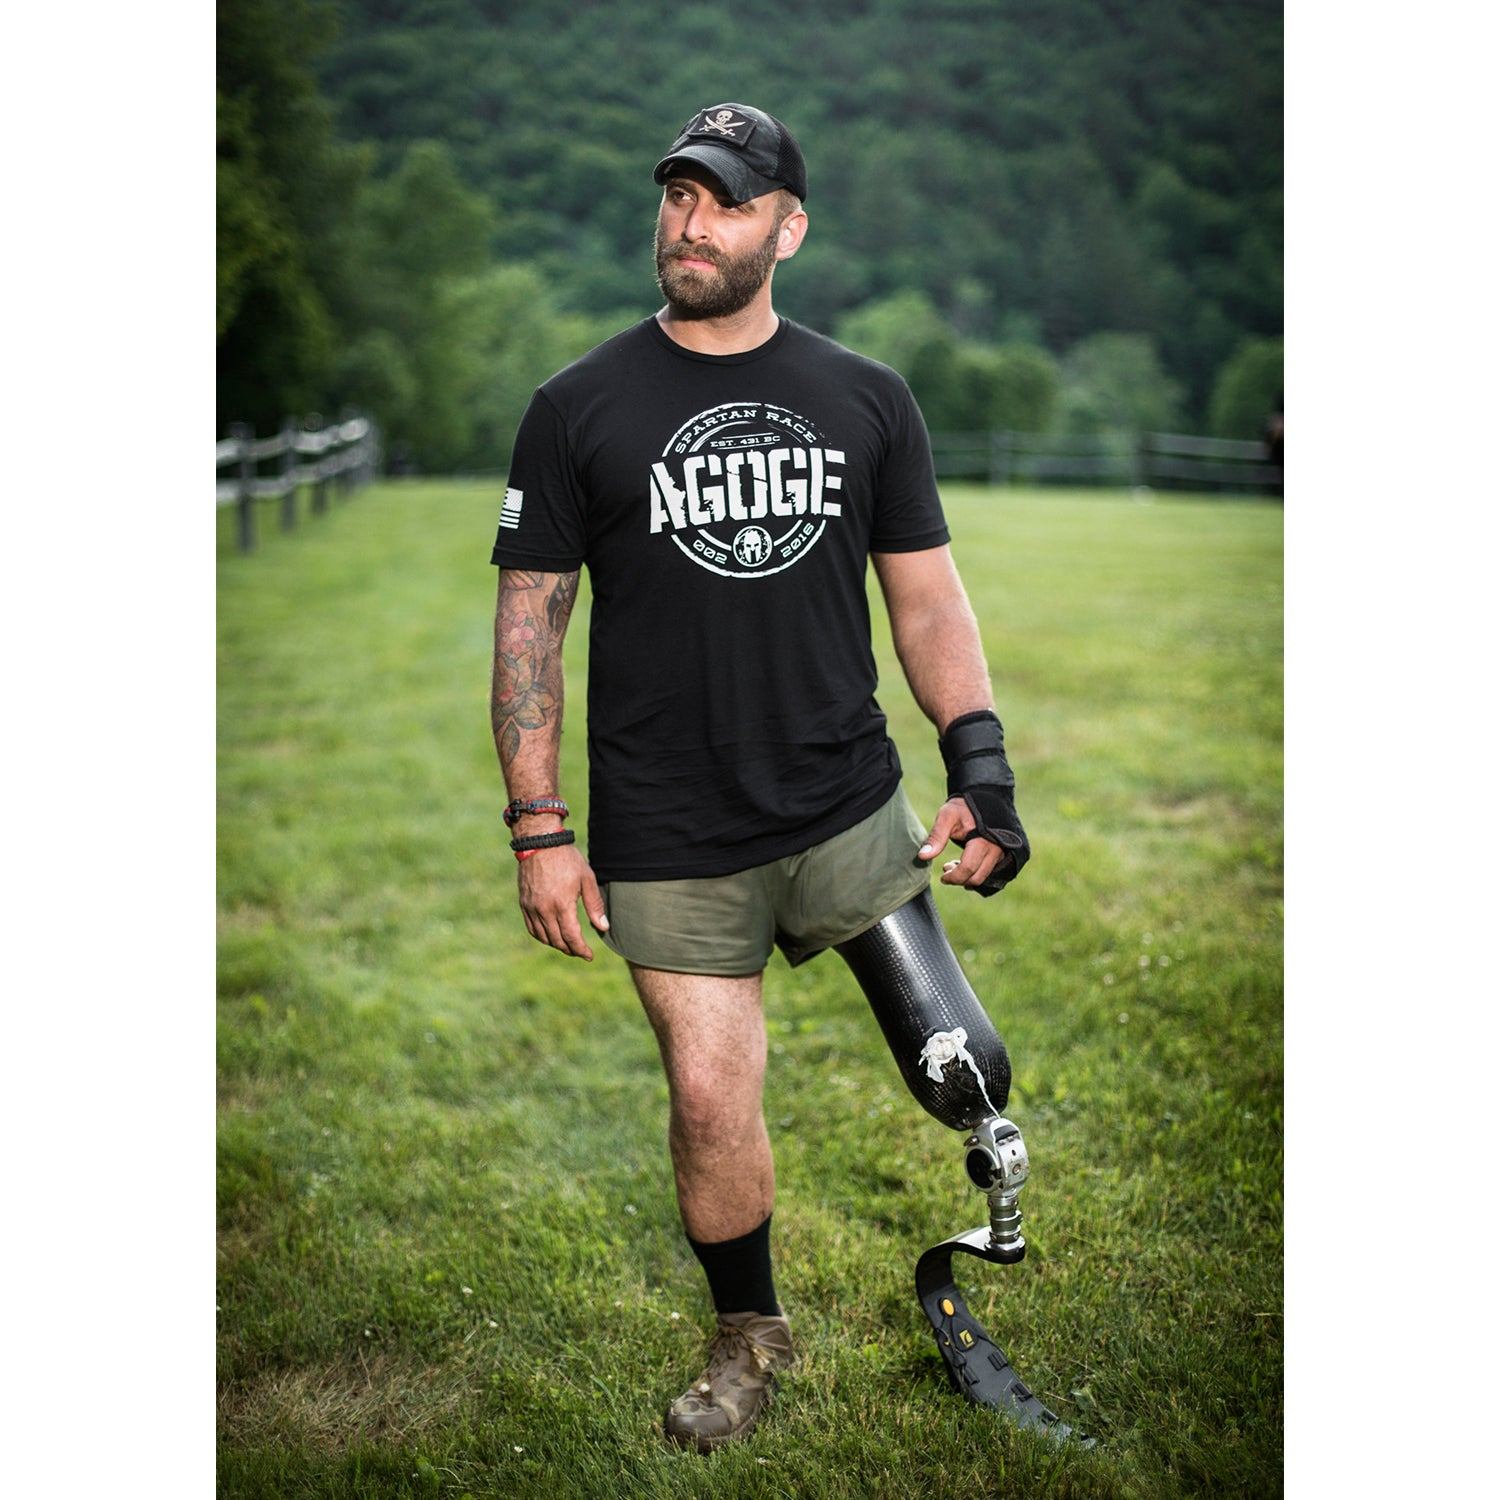 Earl Granville is a nine-year veteran under the Pennsylvania Army National Guard as an infantryman. In the summer of 2008, while on a patrol in Zormat, Afghanistan, his vehicle was hit by a roadside bomb, which resulted in the amputation of his left leg through the knee. His comrades, Specialist Derek Holland of Wind Gap, Pennsylvania, and Major Scott Hagerty of Stillwater, Oklahoma, were killed in action. After his injury, Earl found himself competing as an adaptive athlete in many sports, such as monoski, CrossFit, sled hockey, GORUCK challenge, and Spartan races. He is a team member for the veteran-operated nonprofit Operation Enduring Warrior and the lead ambassador of the veteran-founded clothing line Oscar Mike. After his injury, Granville has competed in the Boston, Detroit, Chicago, New York, and Marine Corps marathons, all on a hand bicycle under the Achilles Freedom Team.